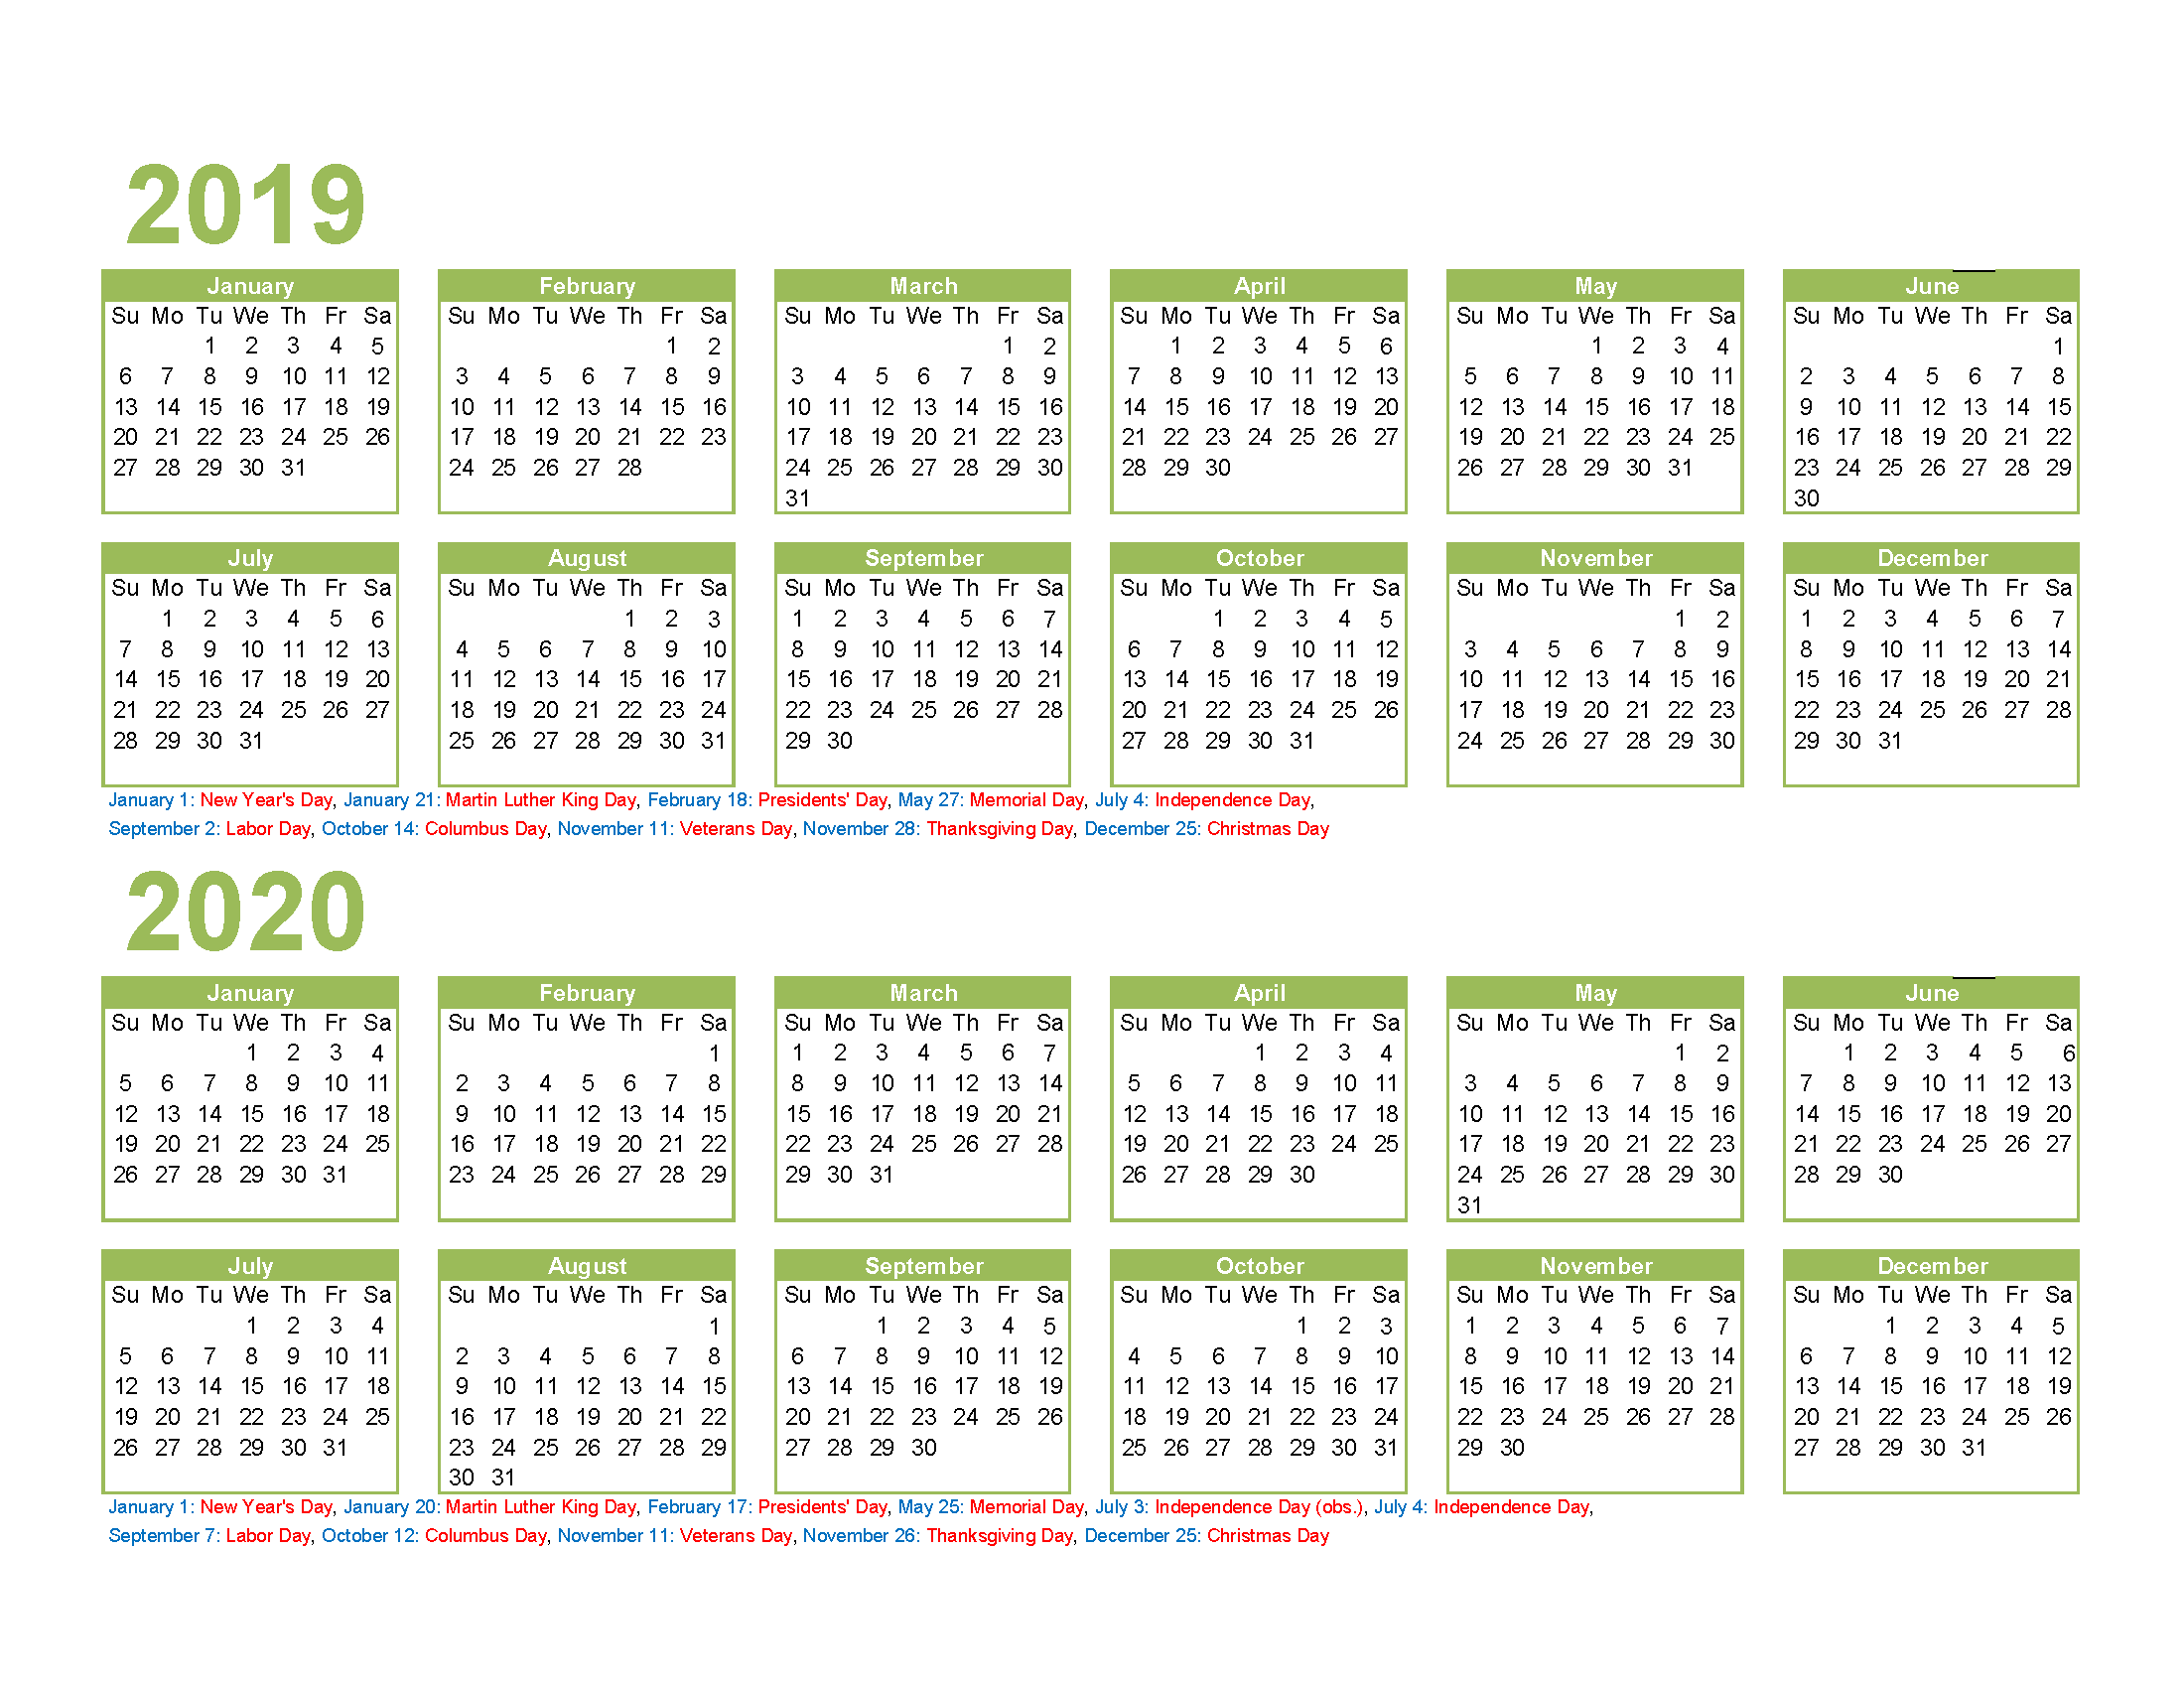 Free Printable 2019 and 2020 Calendar with Holidays